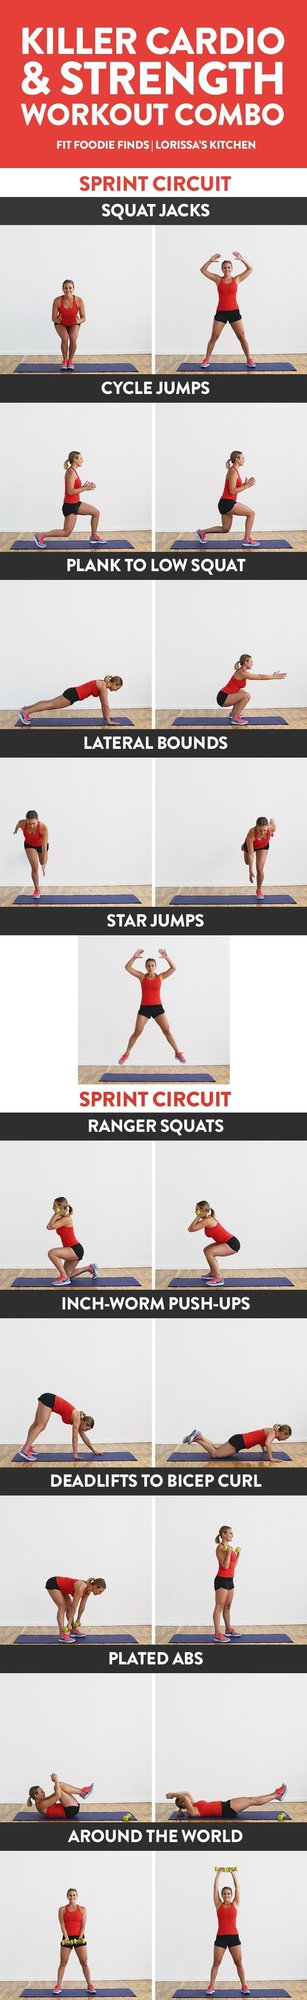 Get your sweat on and do this killer cardio and strength workout combo! It's a mixture of HIIT sprints and strength training all in one for the ultimate calorie torch.